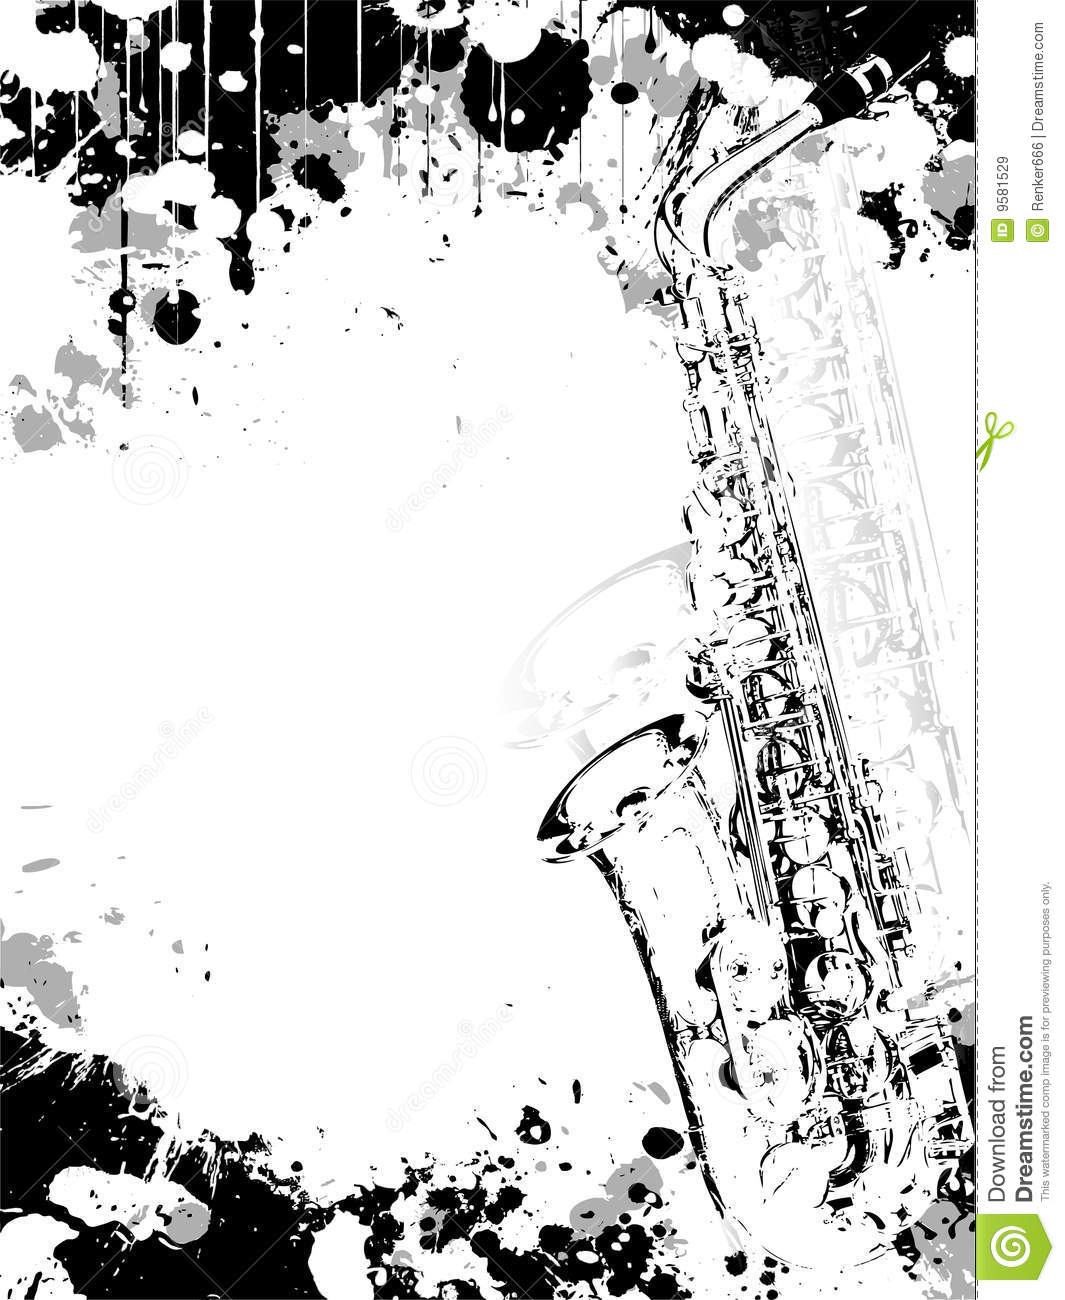 Jazz Poster Background Royalty Free Stock Images - Image: 9581529